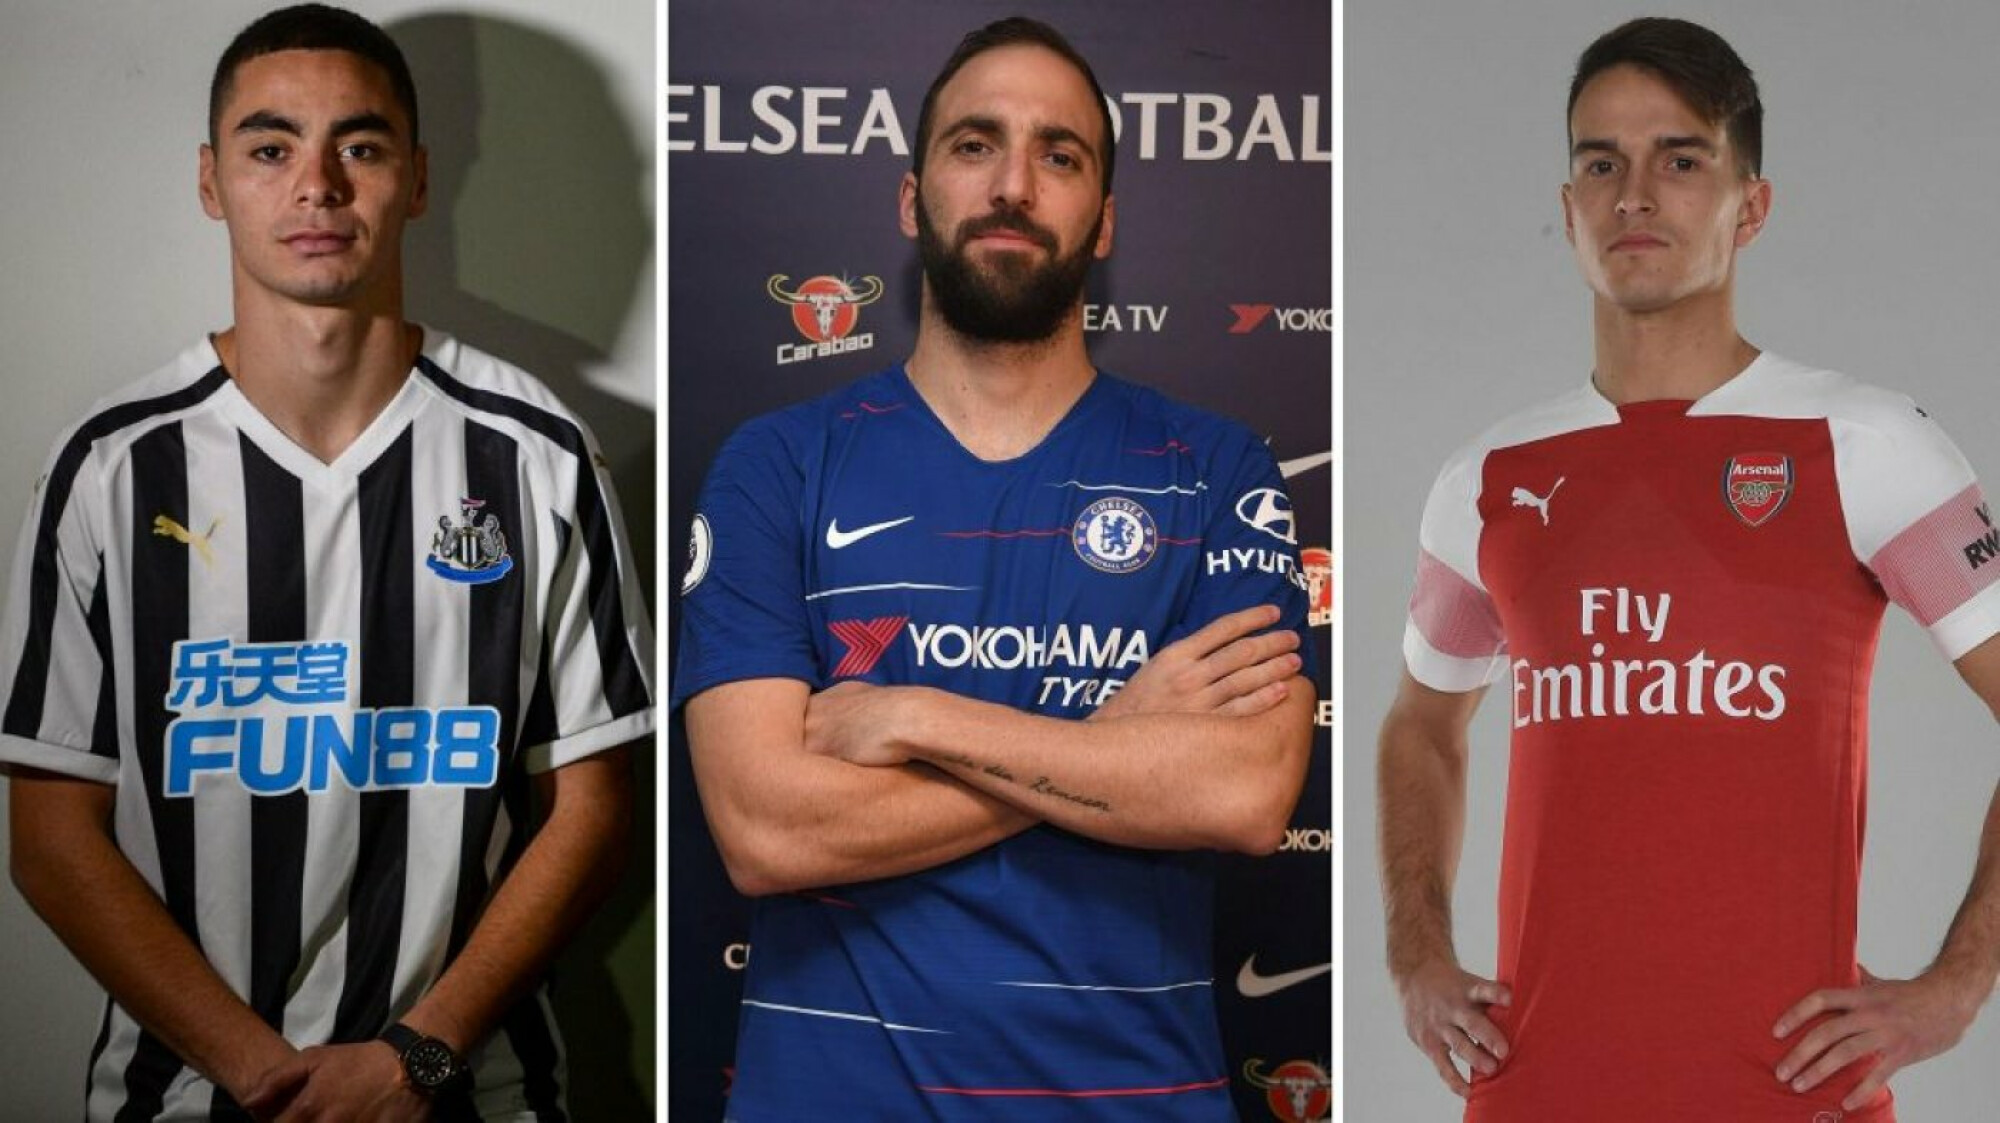 Top 5 Winter signings of the 2018/19 season